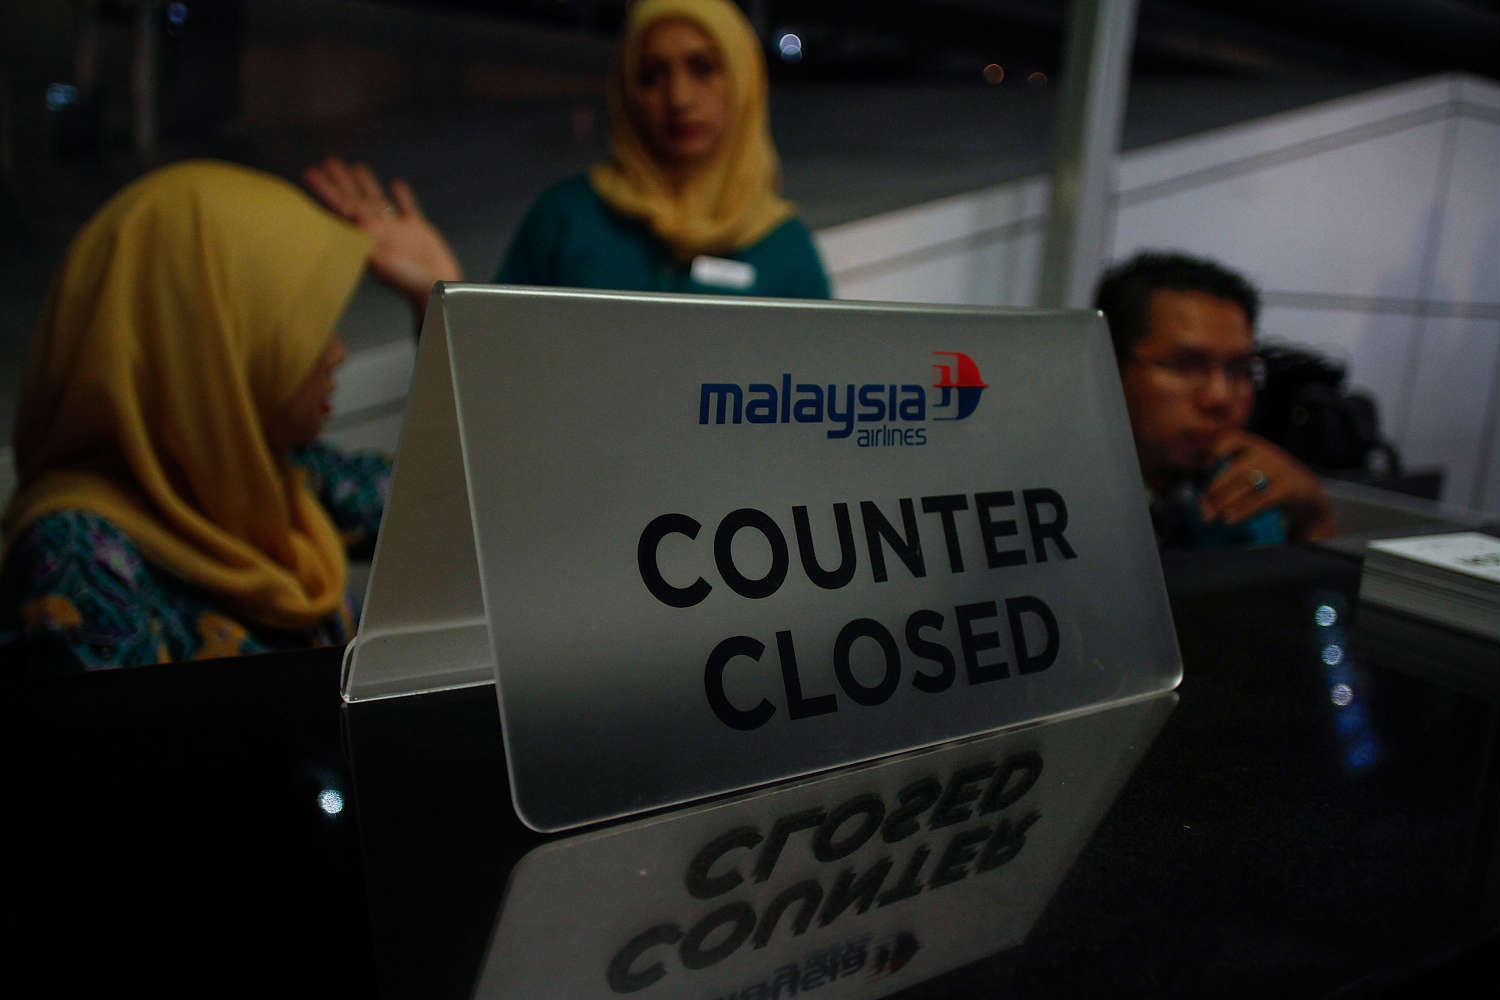 Malaysia Airlines endures its second major accident of 2014